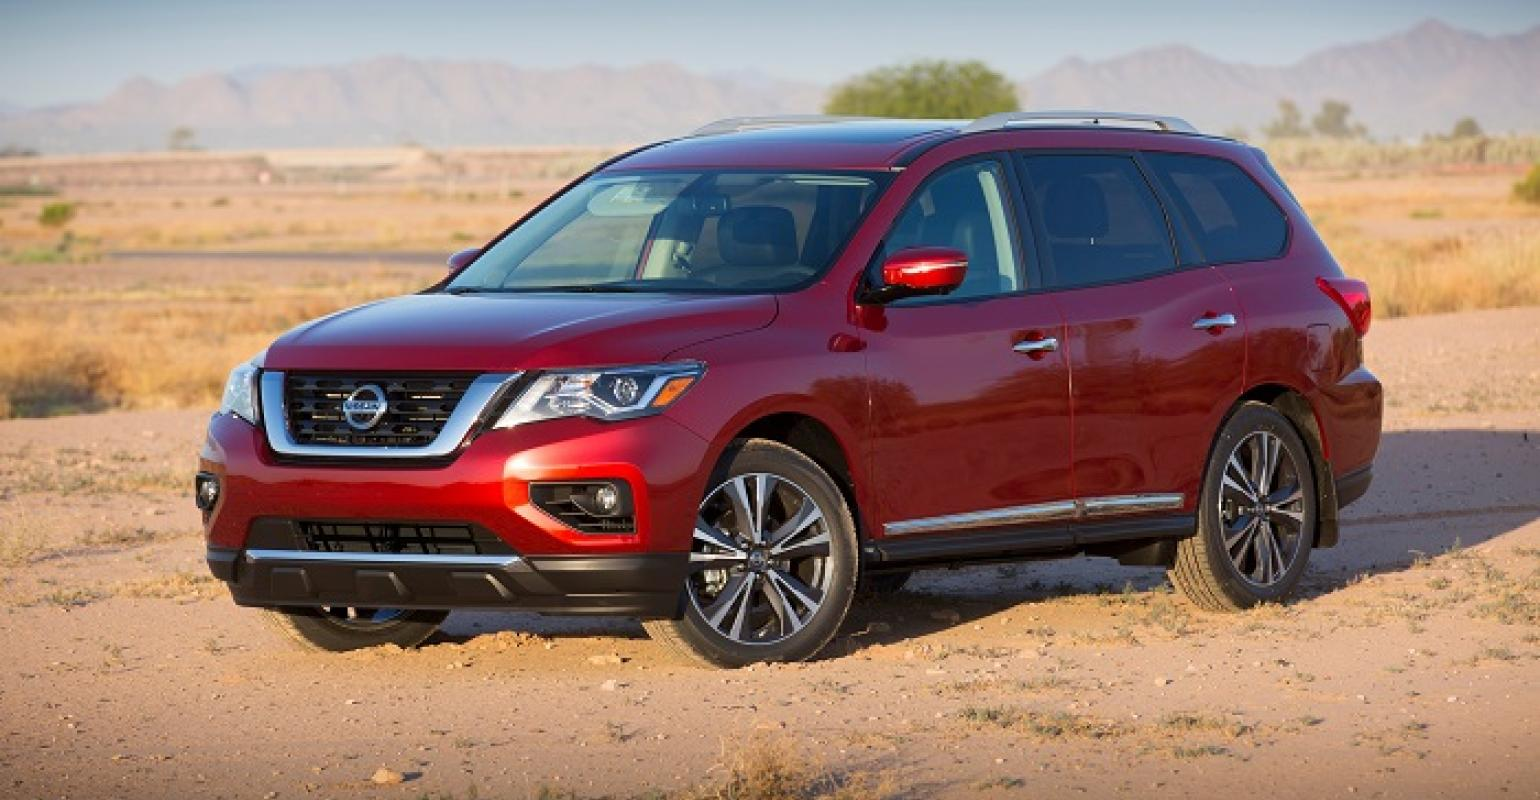 New Nissan Pathfinder | More Power, Towing for '17 | WardsAuto